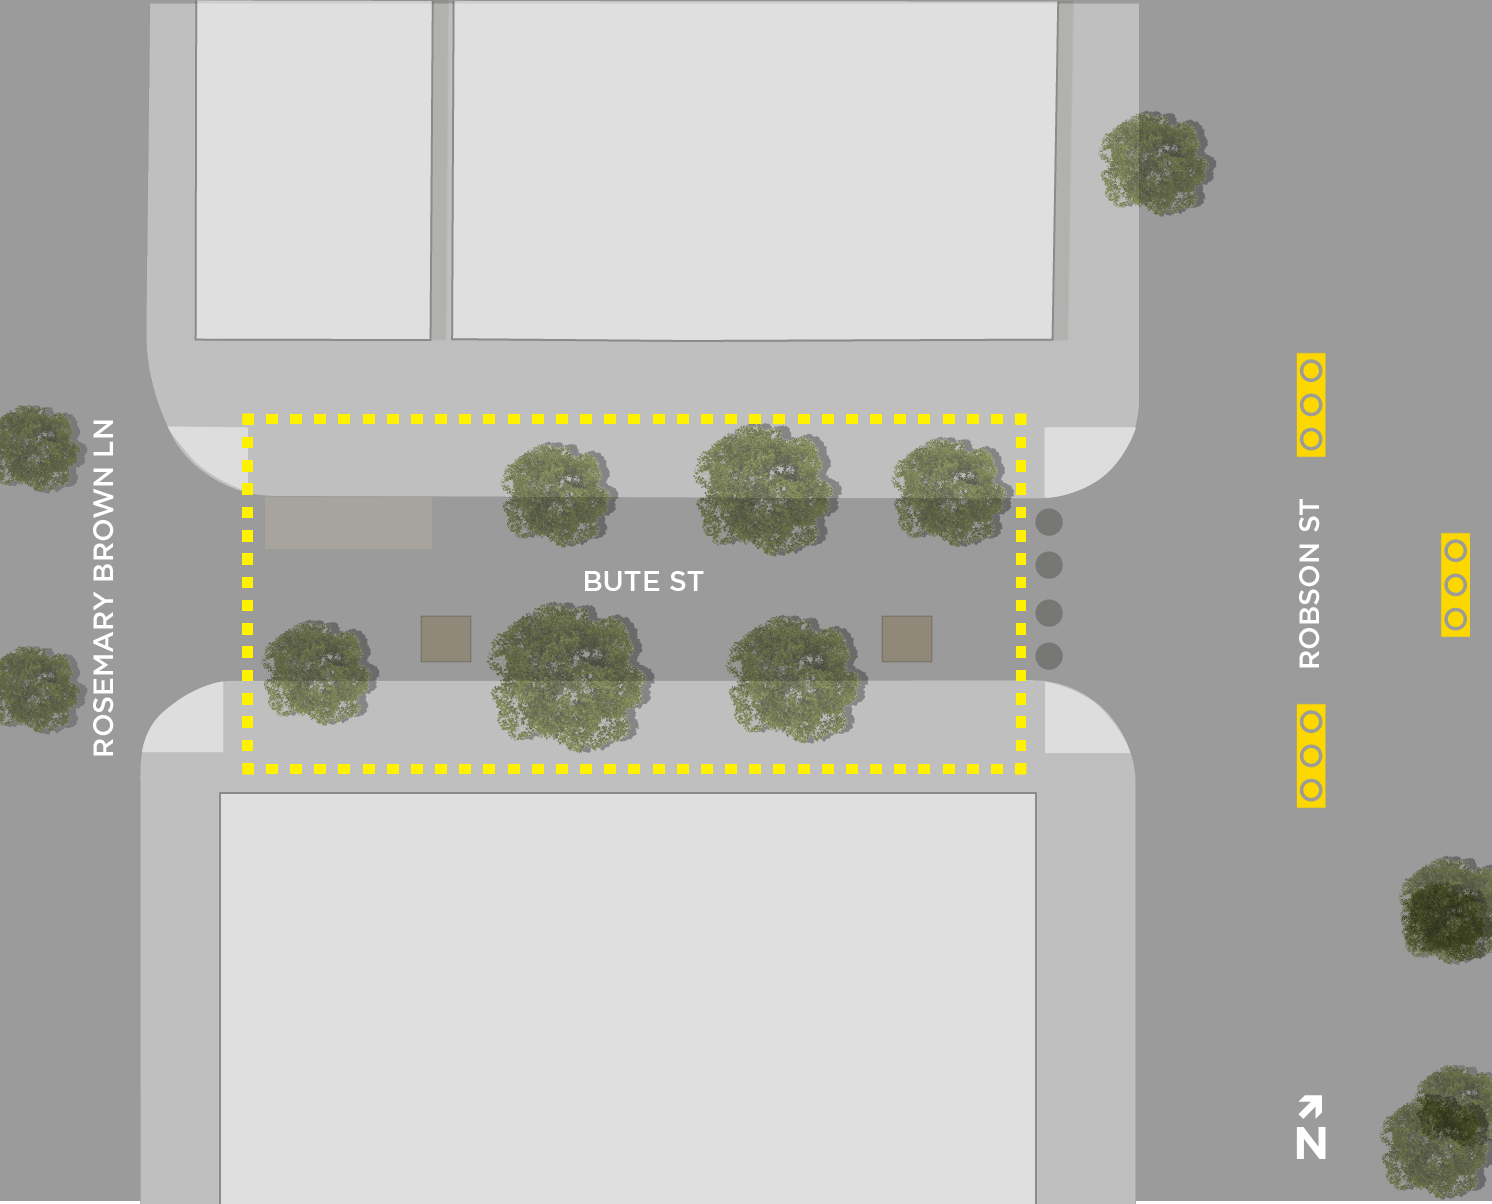 Map of Bute-Robson Plaza designated drinking area.